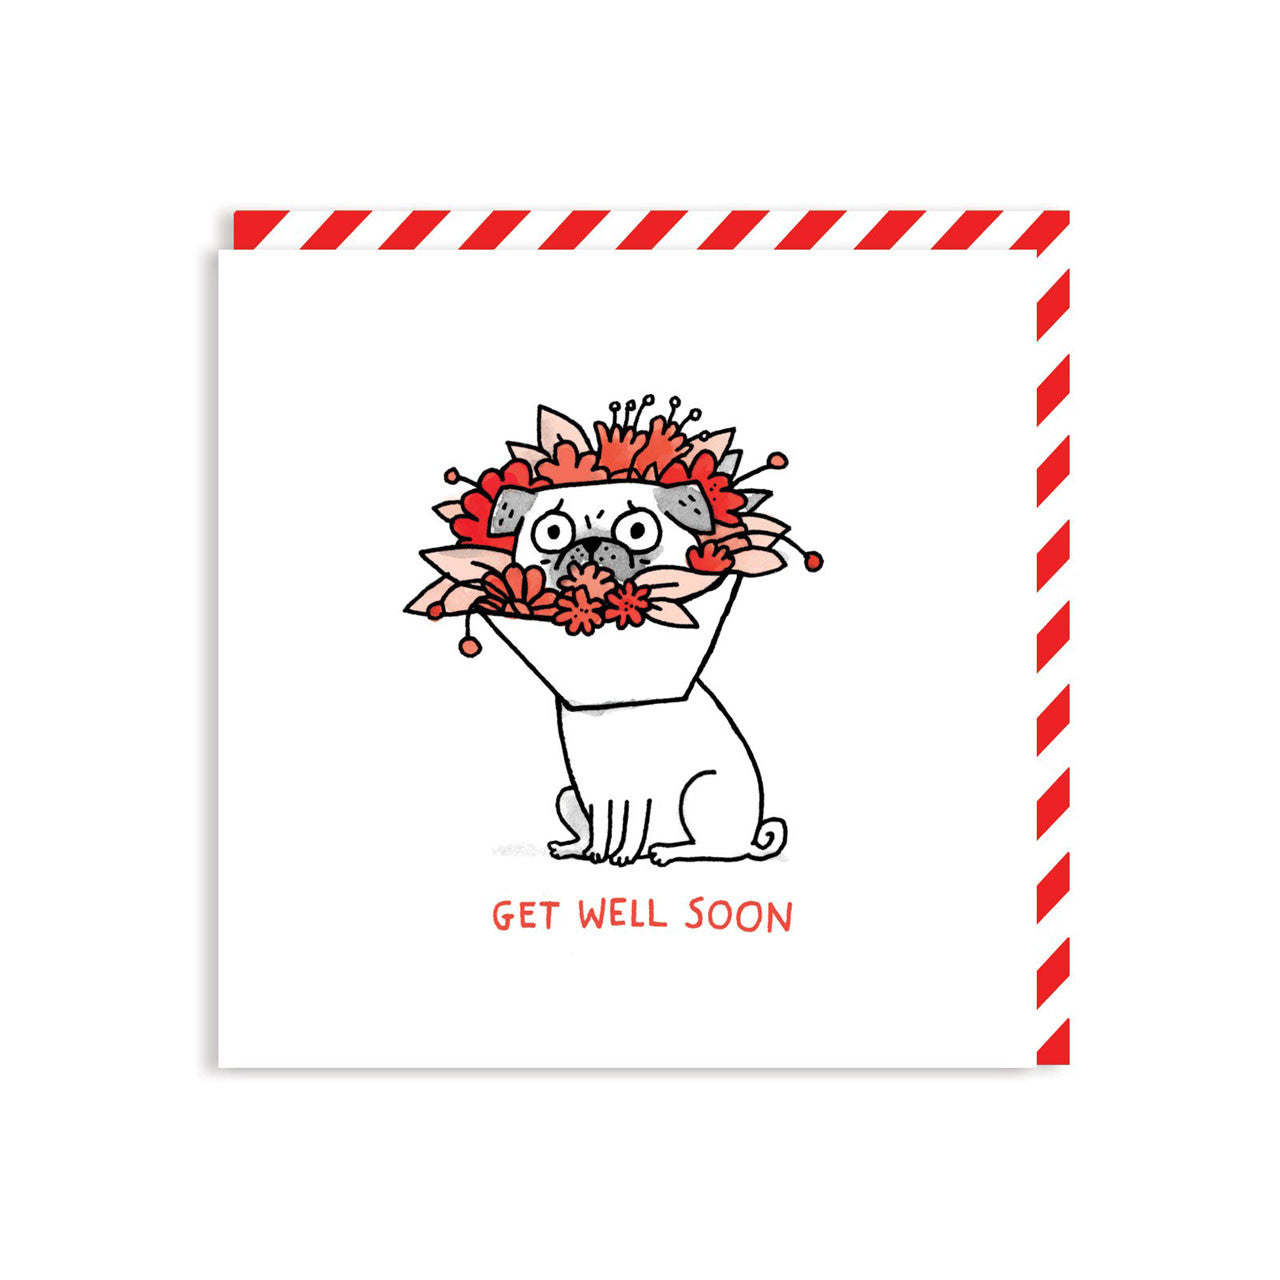 Get Well Soon card by Gemma Correll